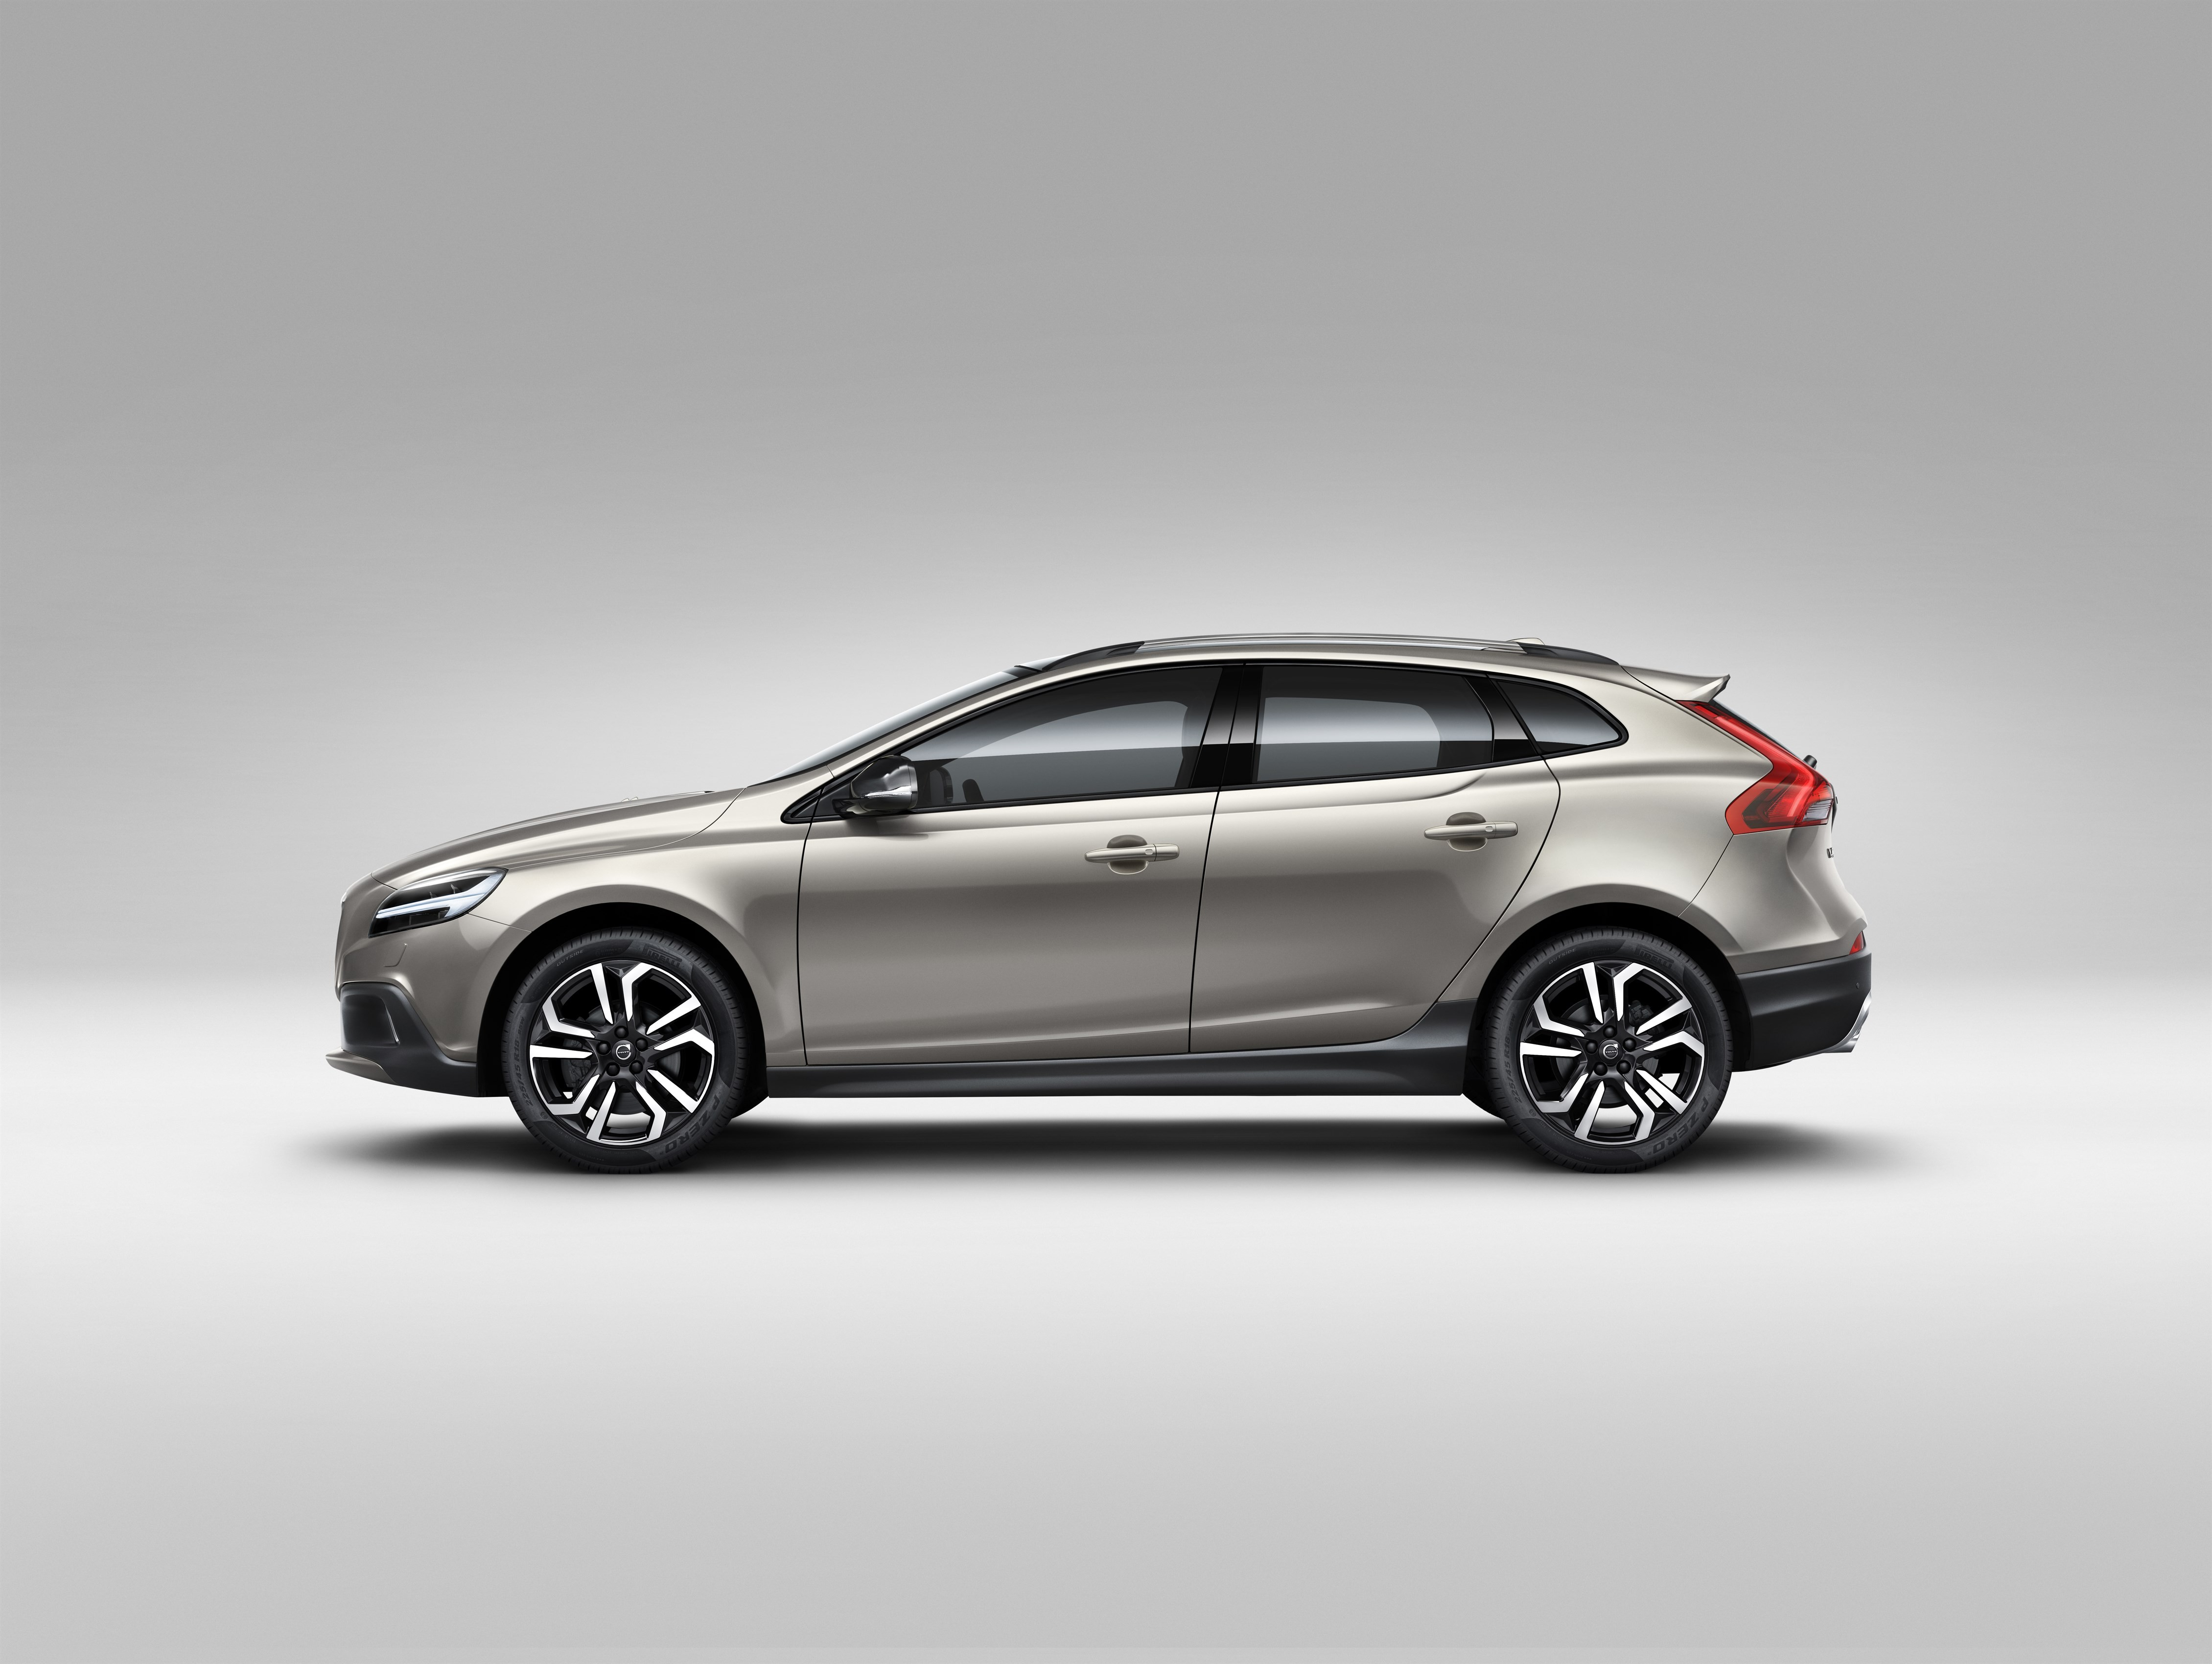 2017 volvo v40 cross country new engines 1 5l t3 and 2 0l t4 and 2 liter d2 autoevolution. Black Bedroom Furniture Sets. Home Design Ideas